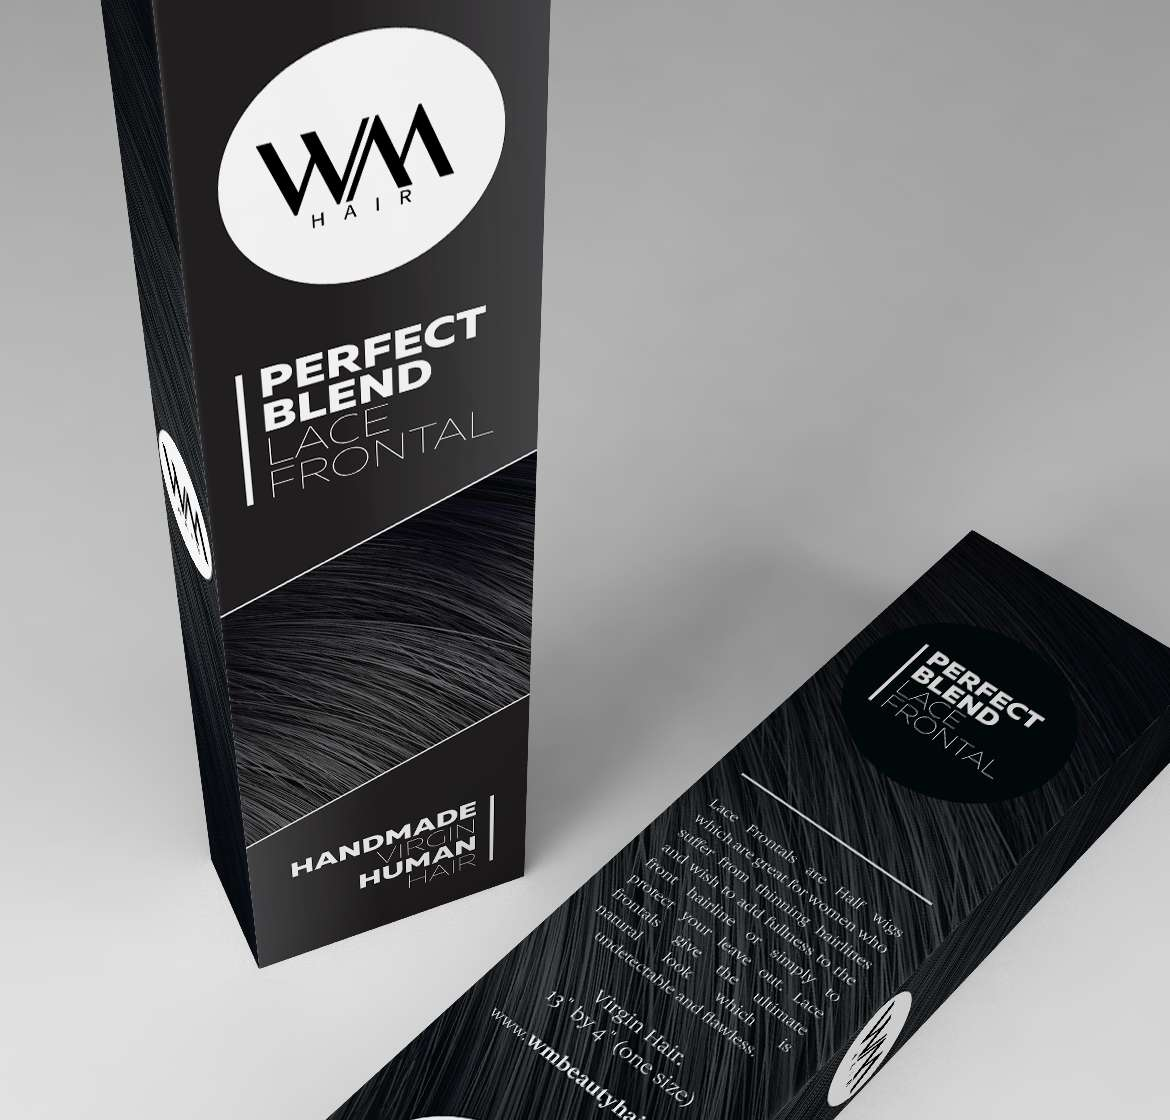 alternate-lace-frontal-whitney-marie-virgin-human-hair-extensions-packaging-design-with-reverse-zoomed-out-image